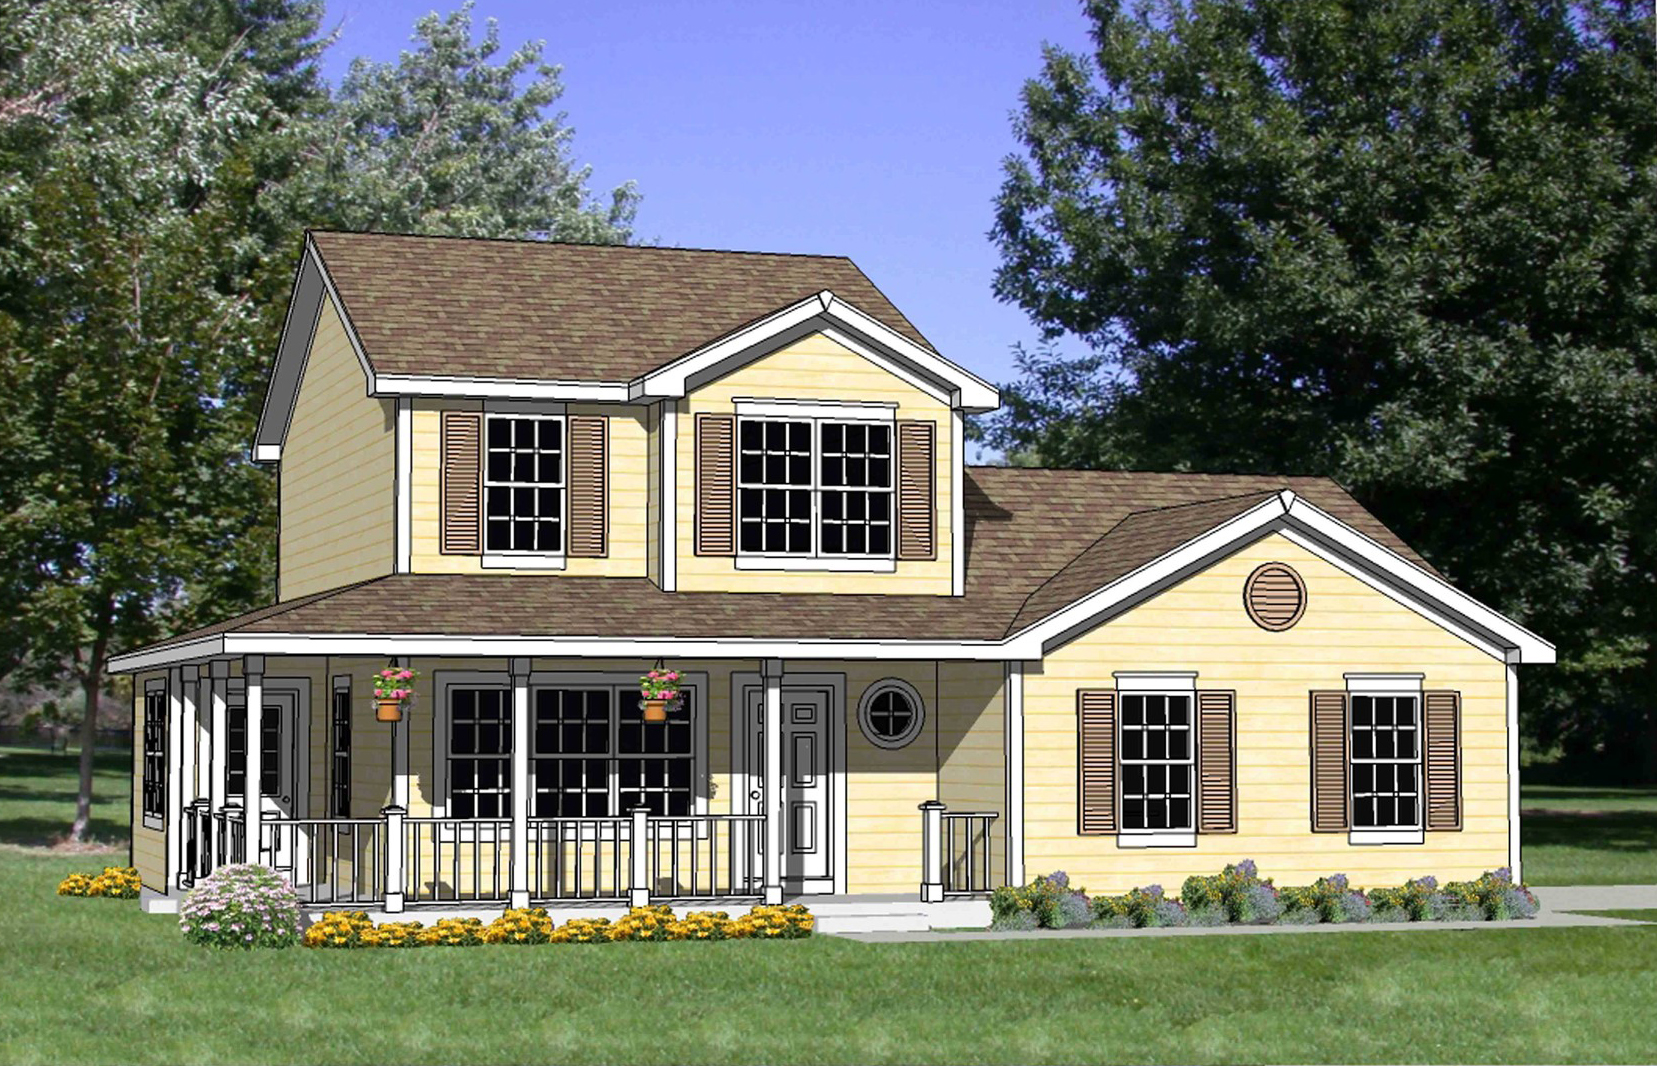 Country house plan with wrap around porch 12730ma for Farmhouse plan with wrap around porch